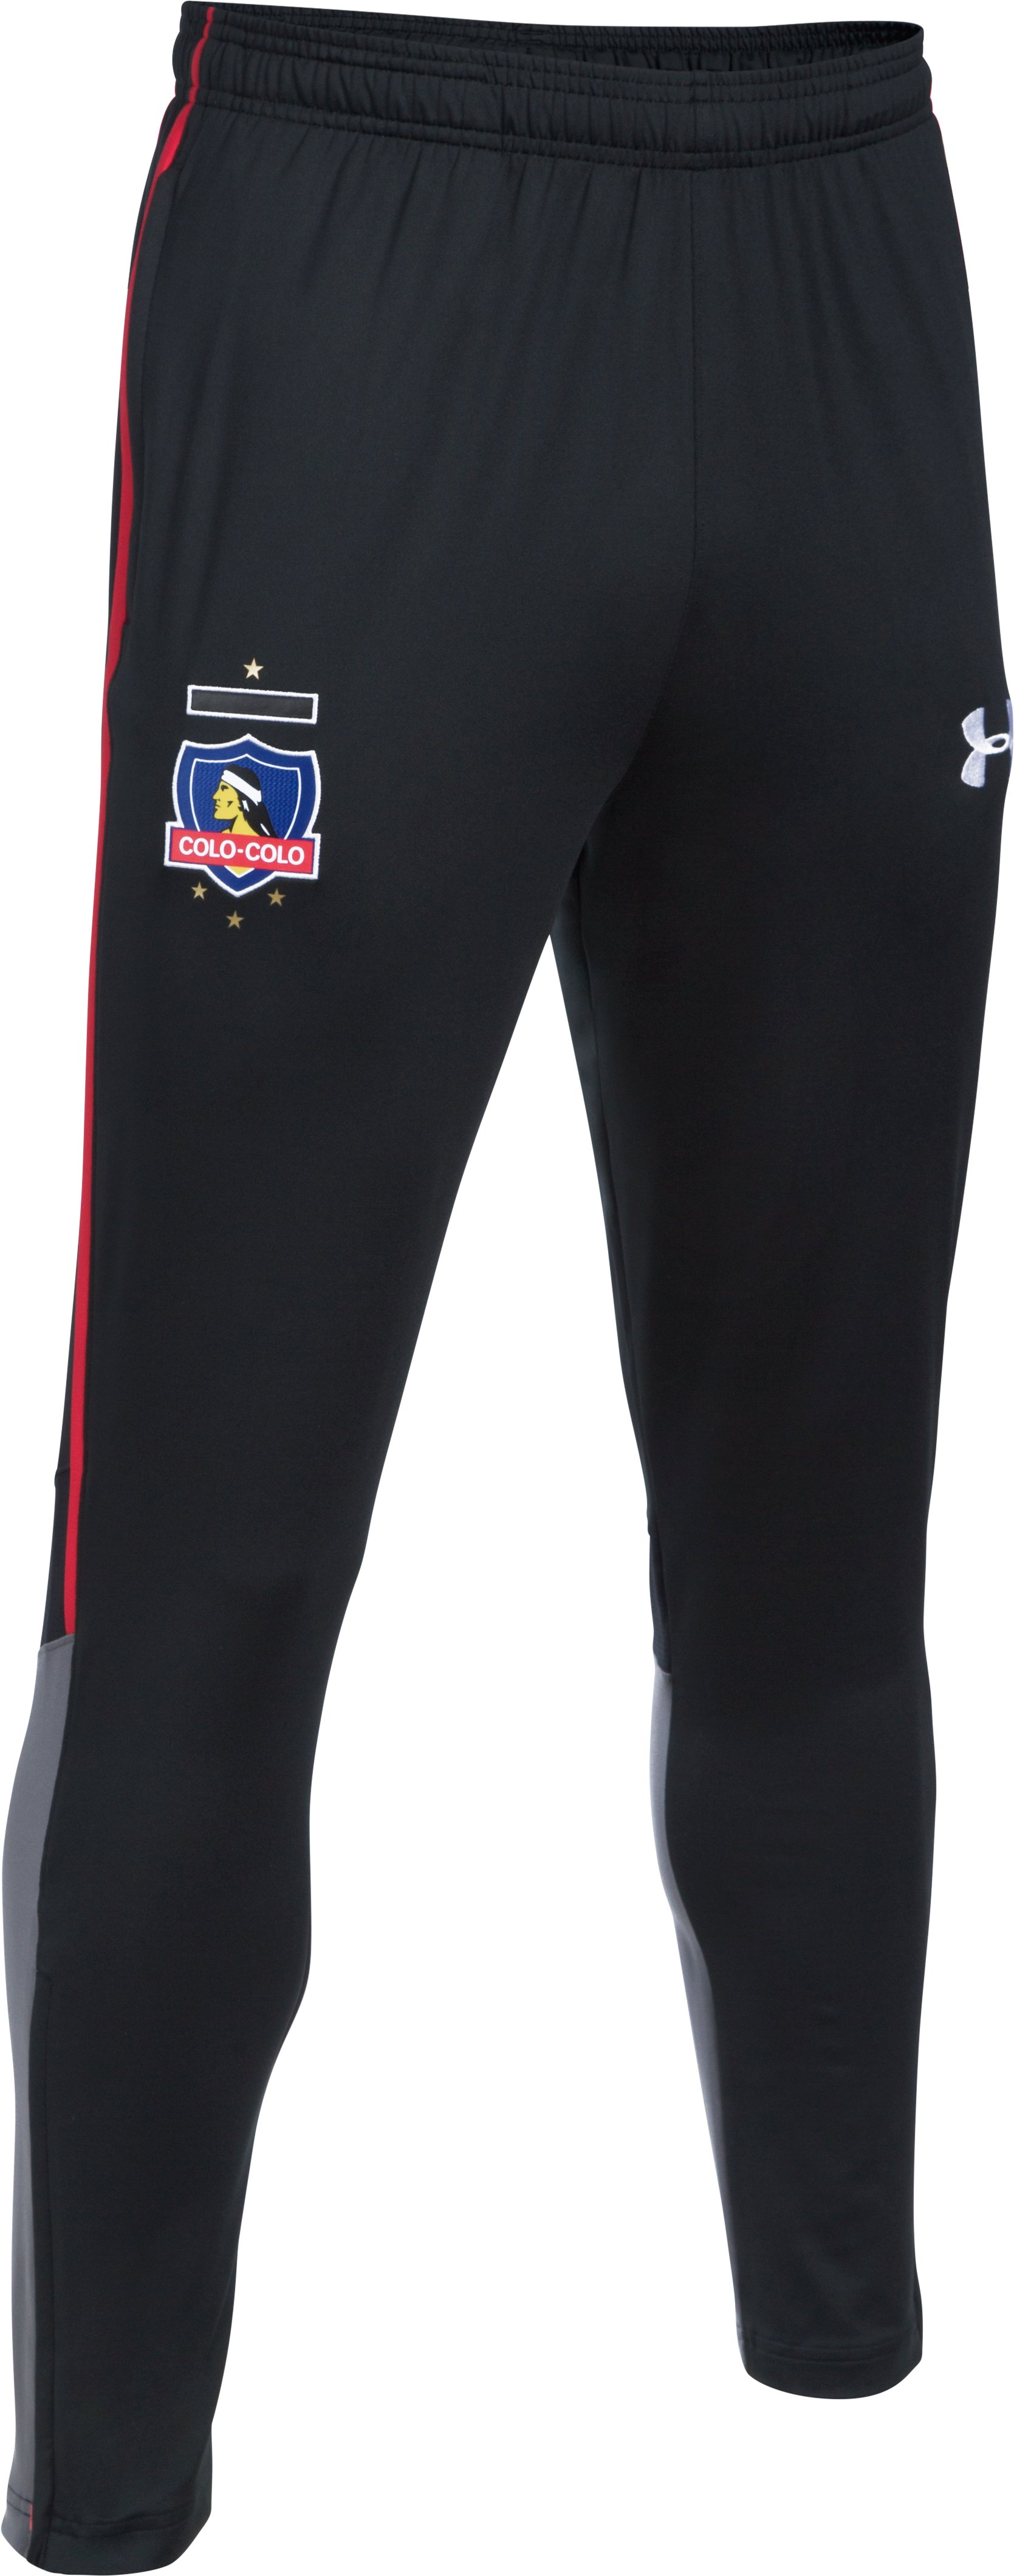 Men's Colo-Colo Training Pants, Black , undefined